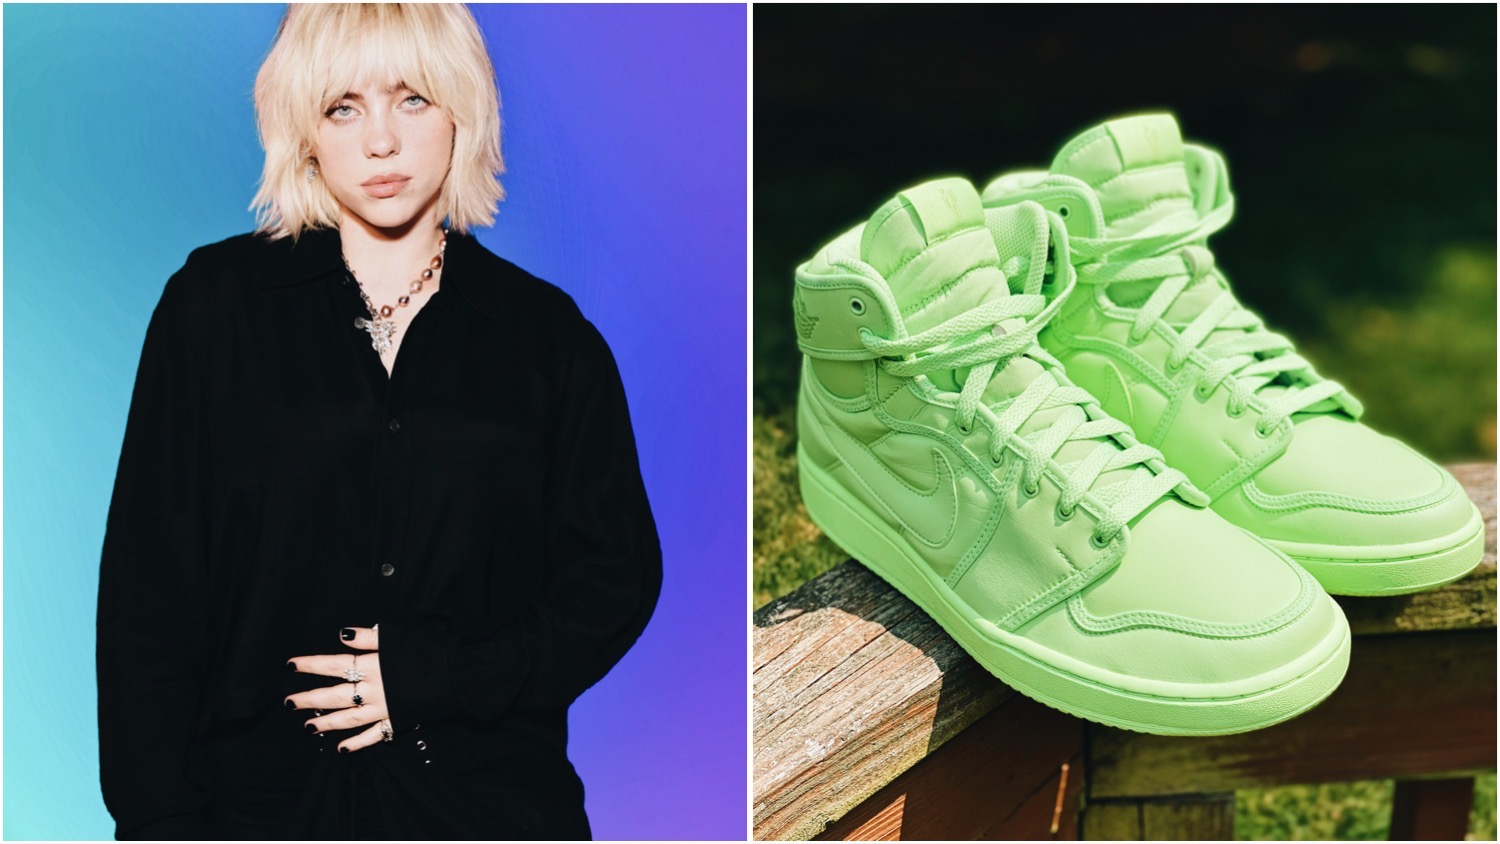 Split image features a photo of Billie Eilish on a multi-colored background (left), and a photo of the upcoming shoes (right). The singer is partnering with Nike to produce a custom Air Jordans design in her signature slime green.